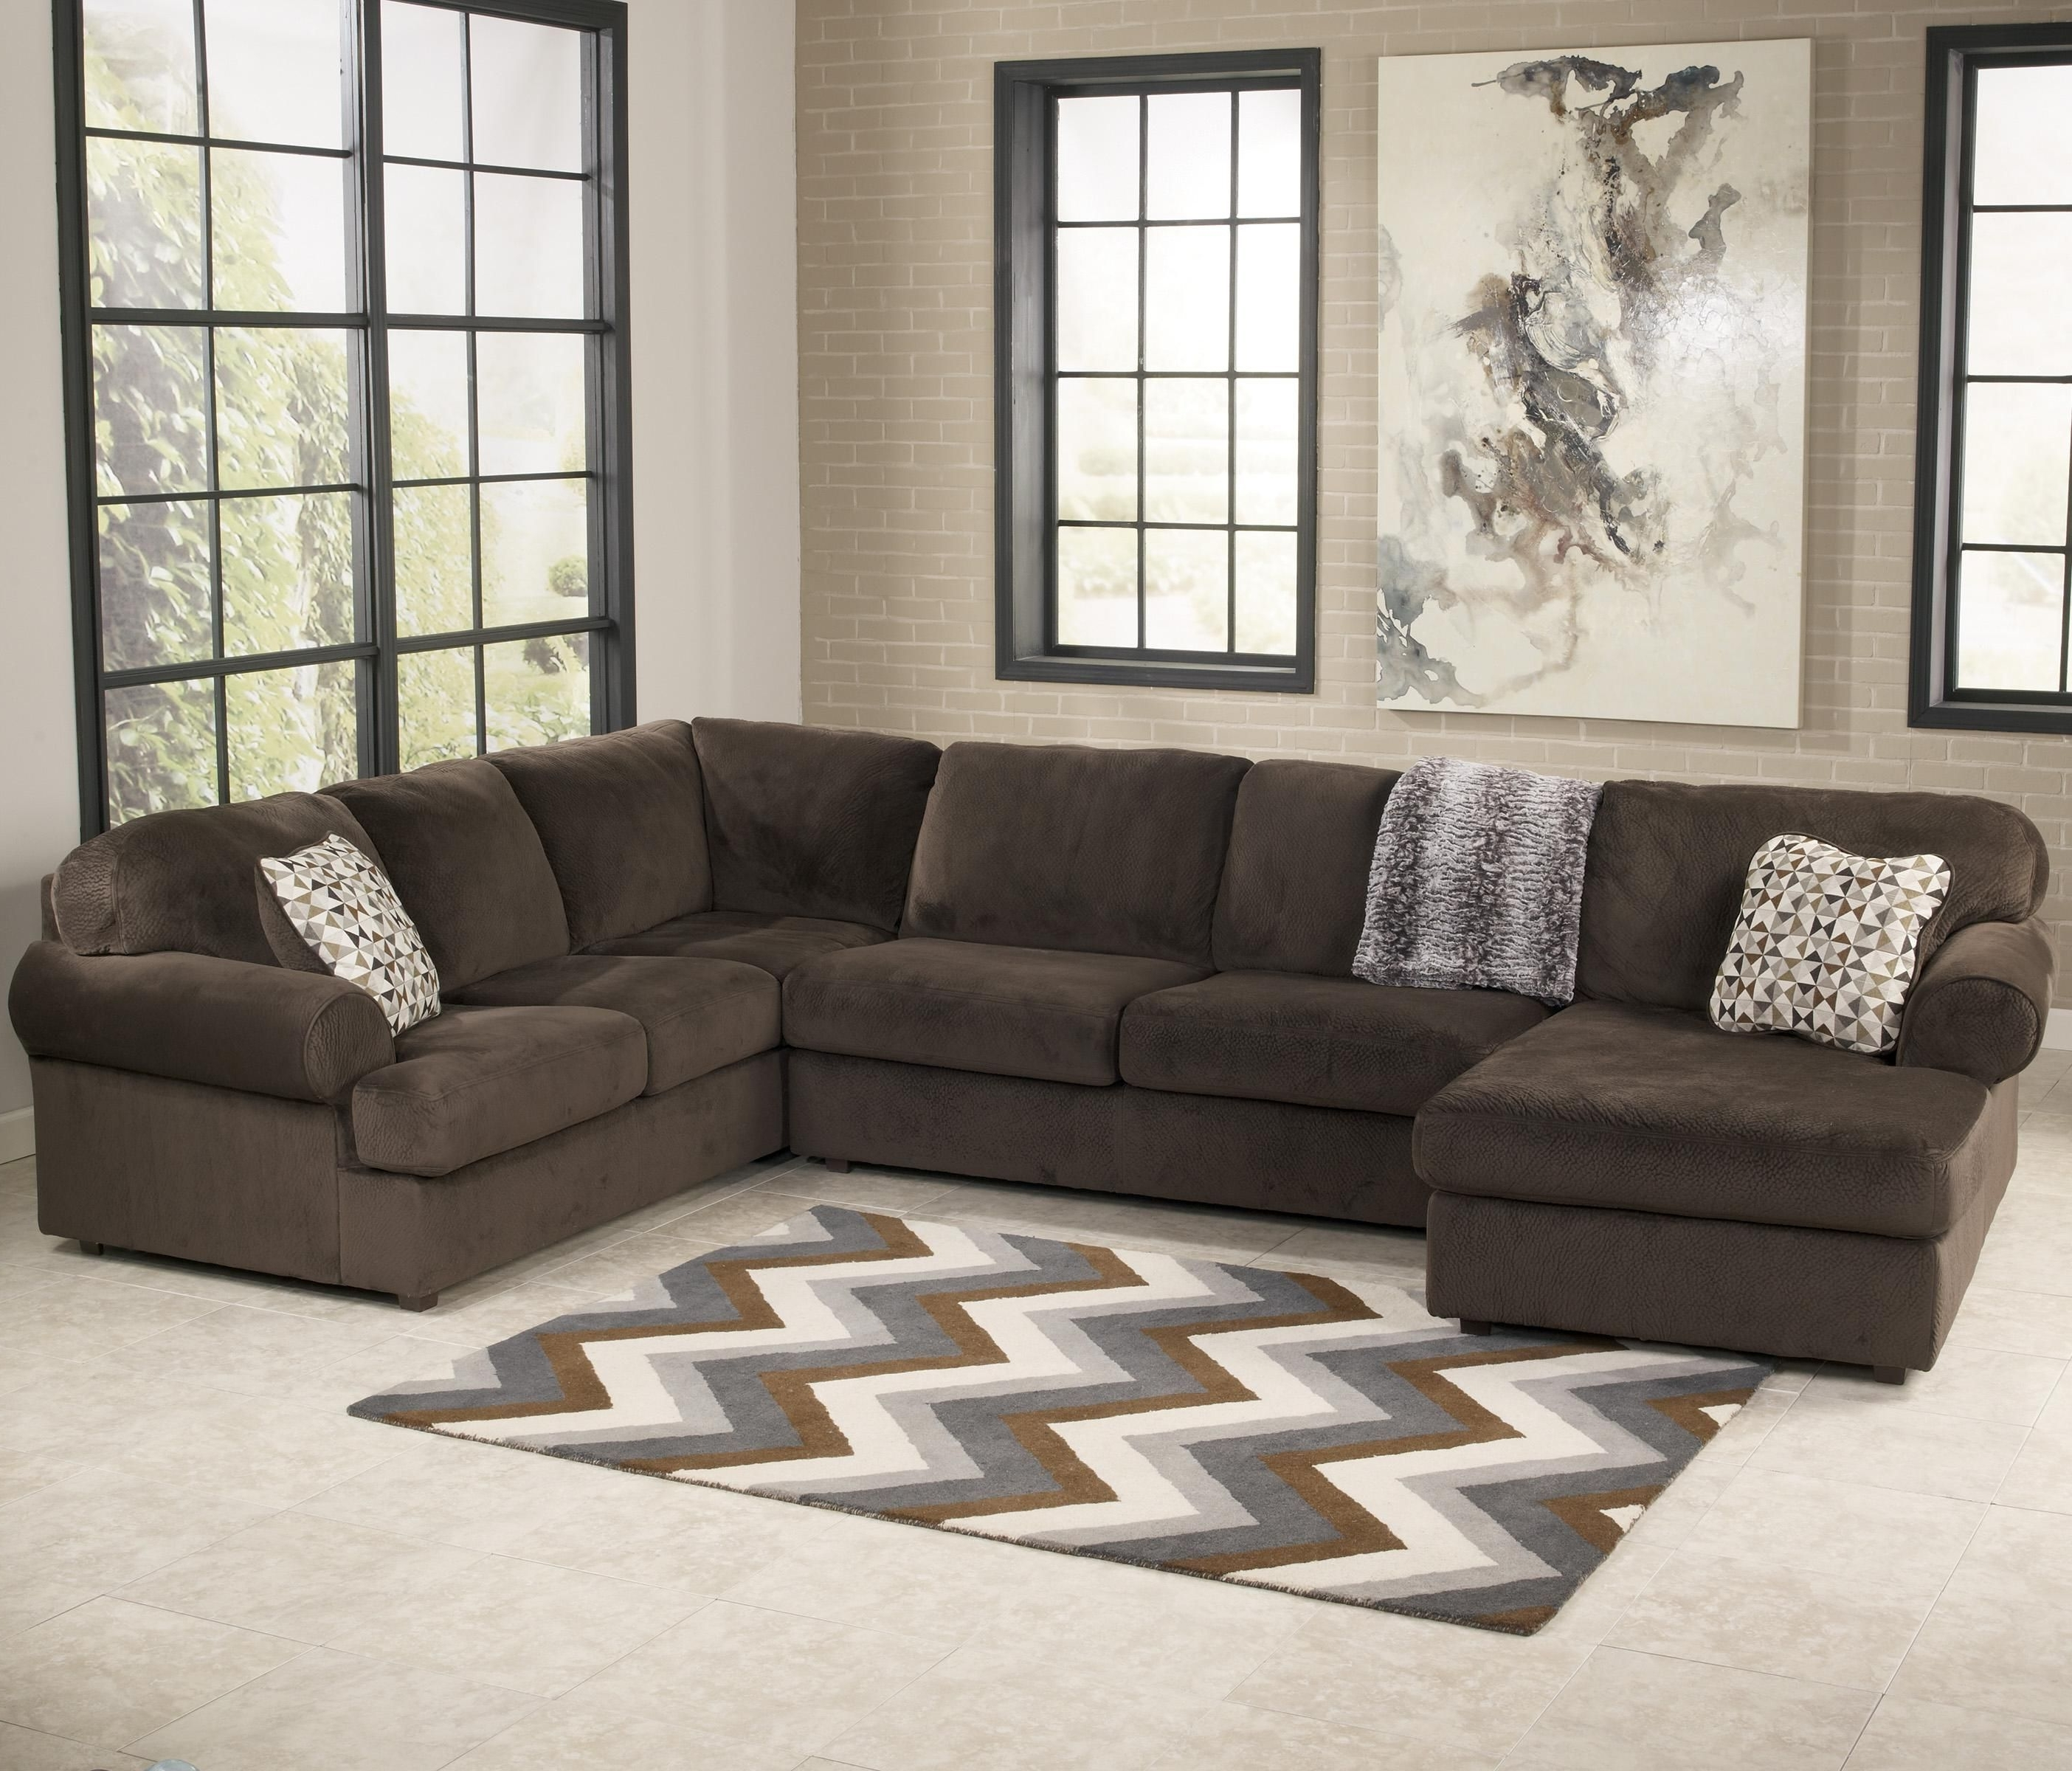 Most Up To Date Murfreesboro Tn Sectional Sofas With Regard To Jessa Place – Chocolate Casual Sectional Sofa With Left Chaise (View 8 of 20)